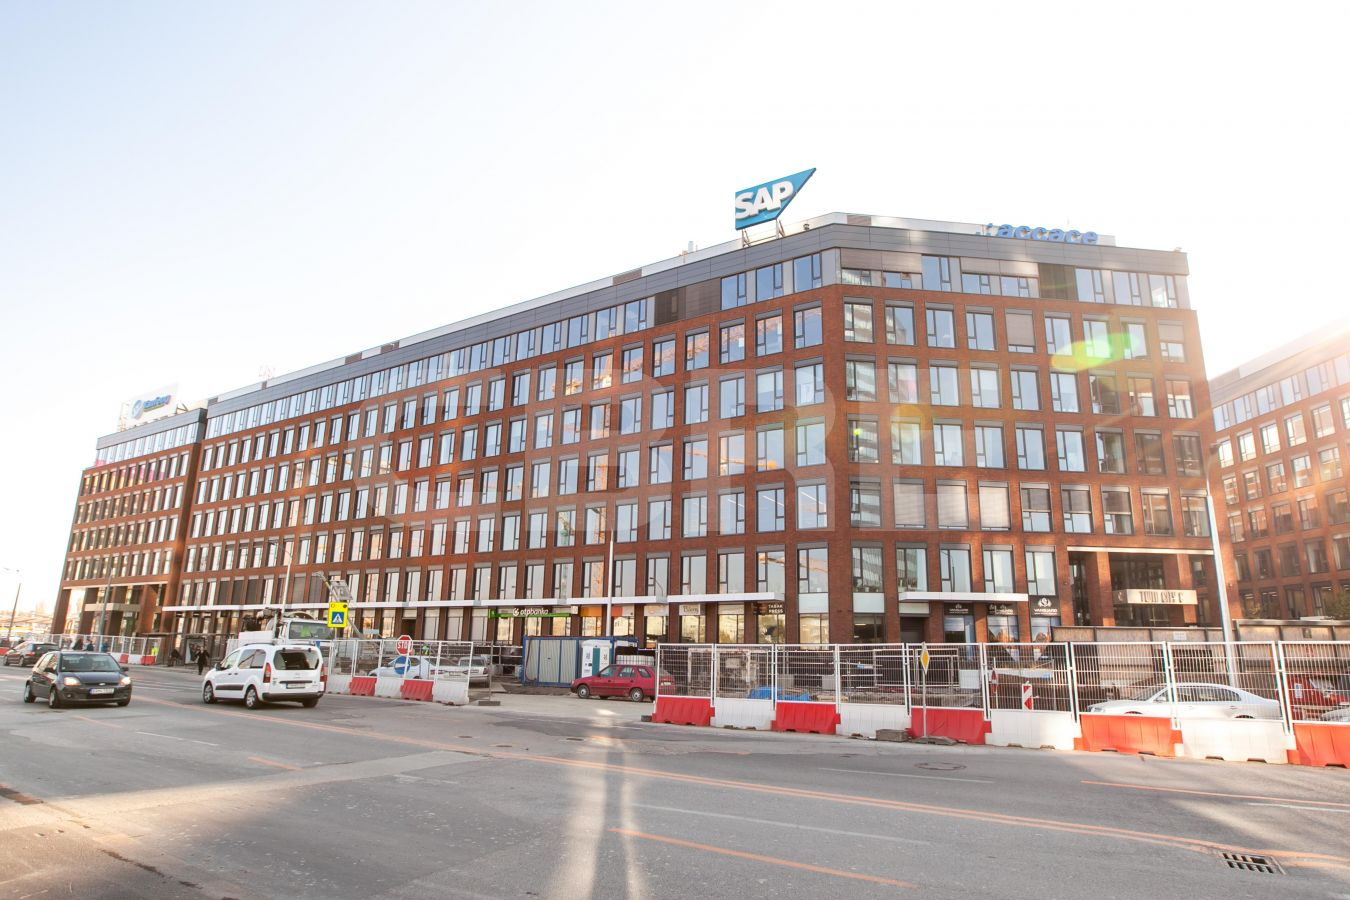 Twin City - C, Bratislava - Staré Mesto | Offices for rent by CBRE | 3